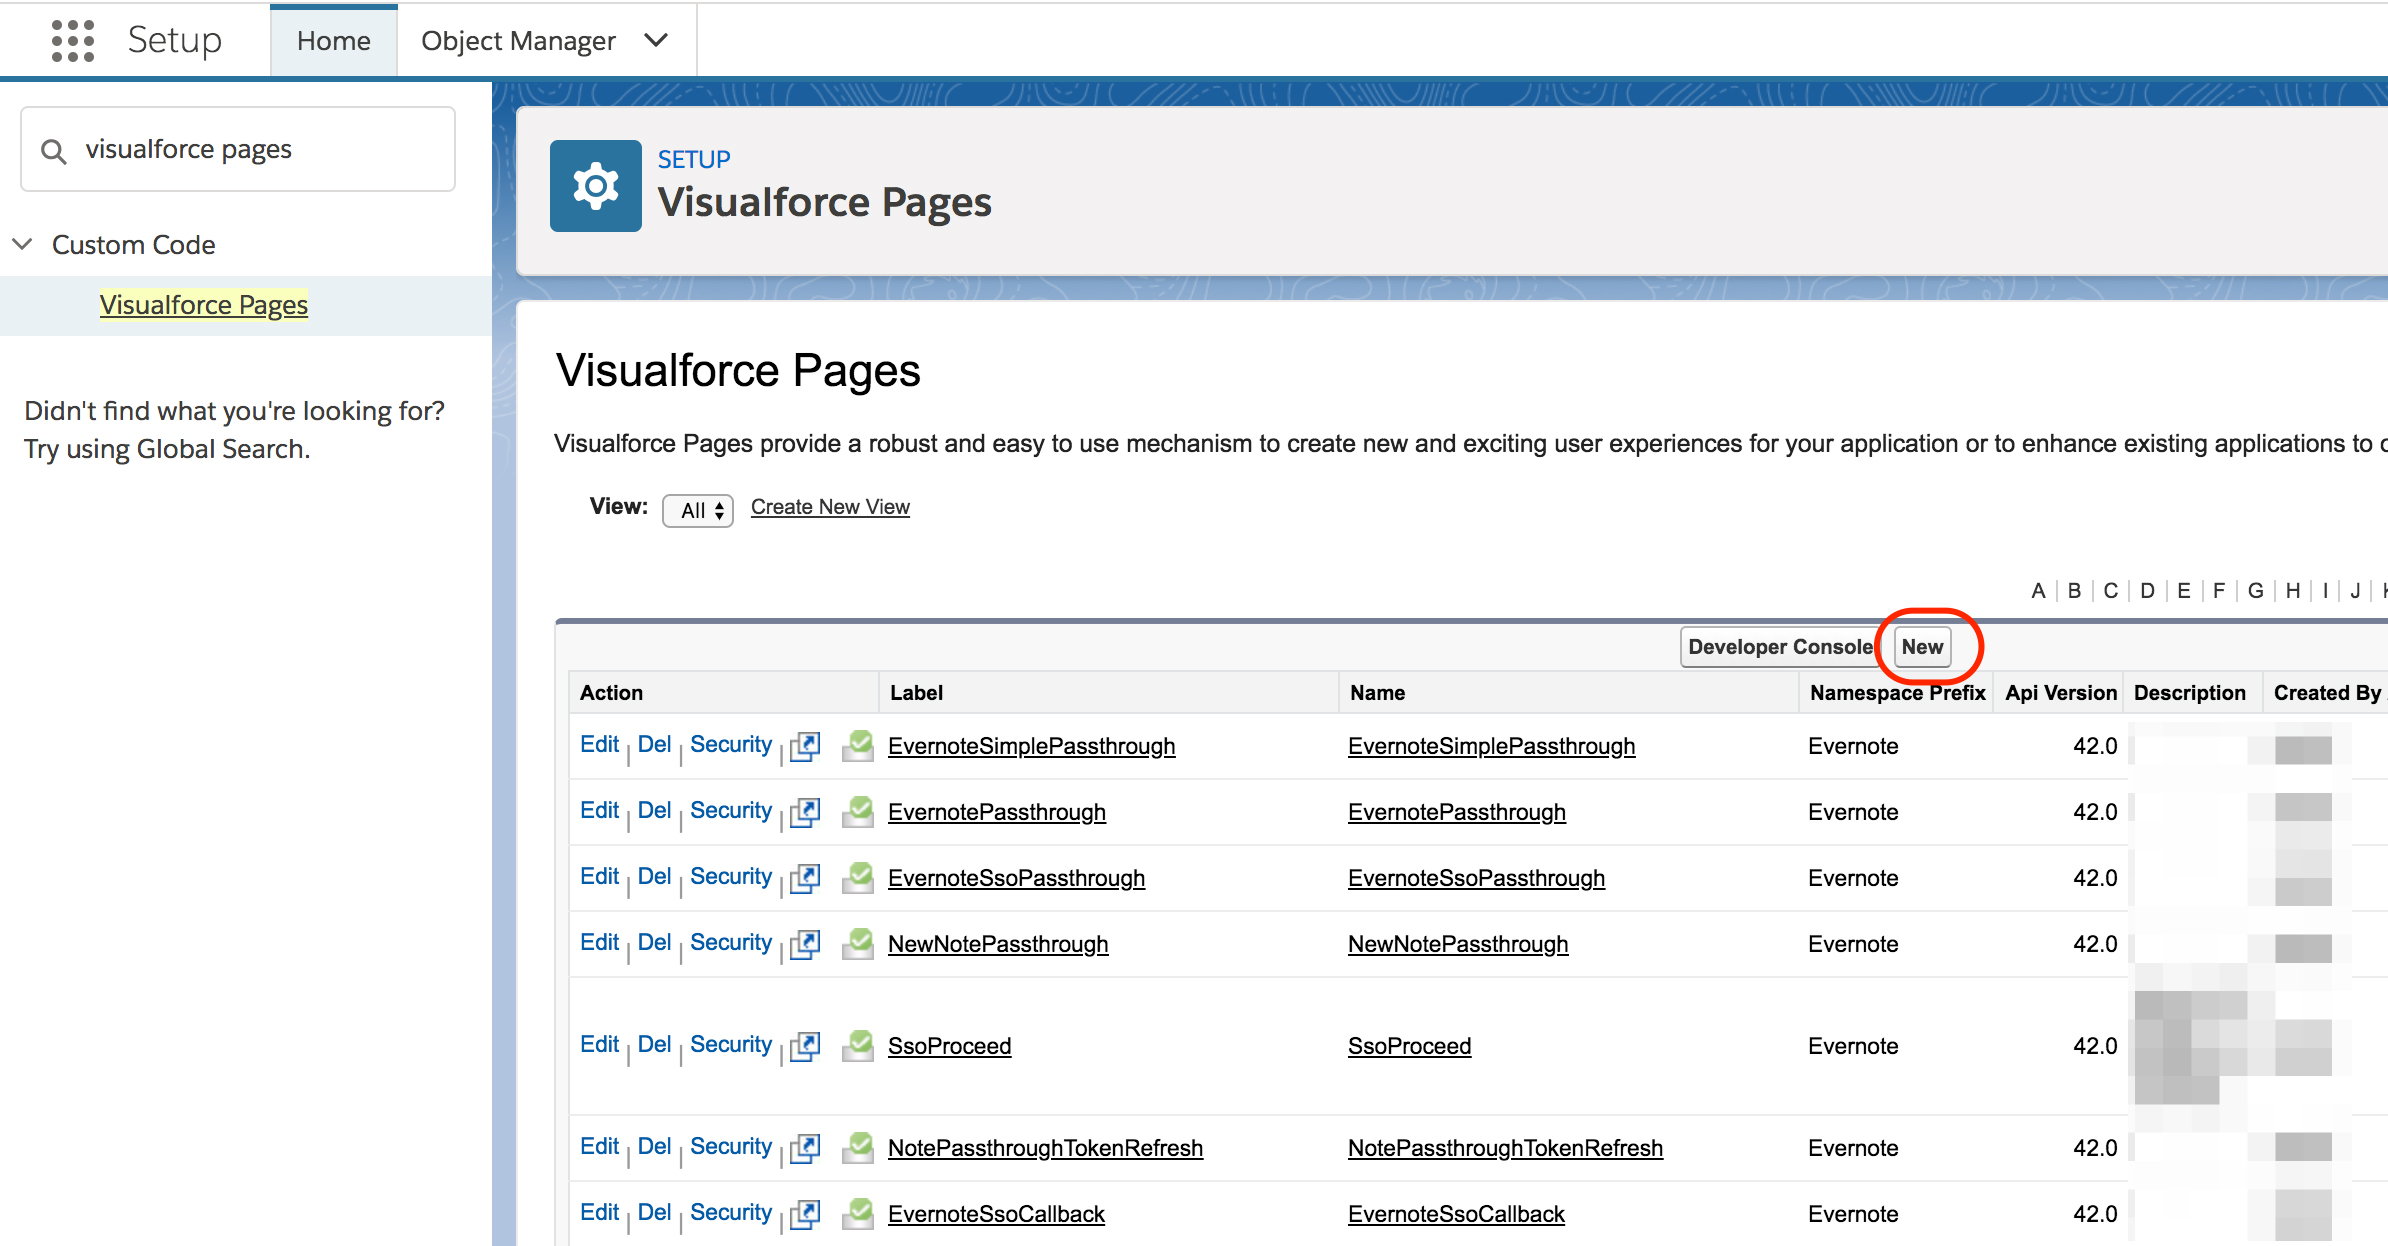 Add Evernote to a Visualforce page